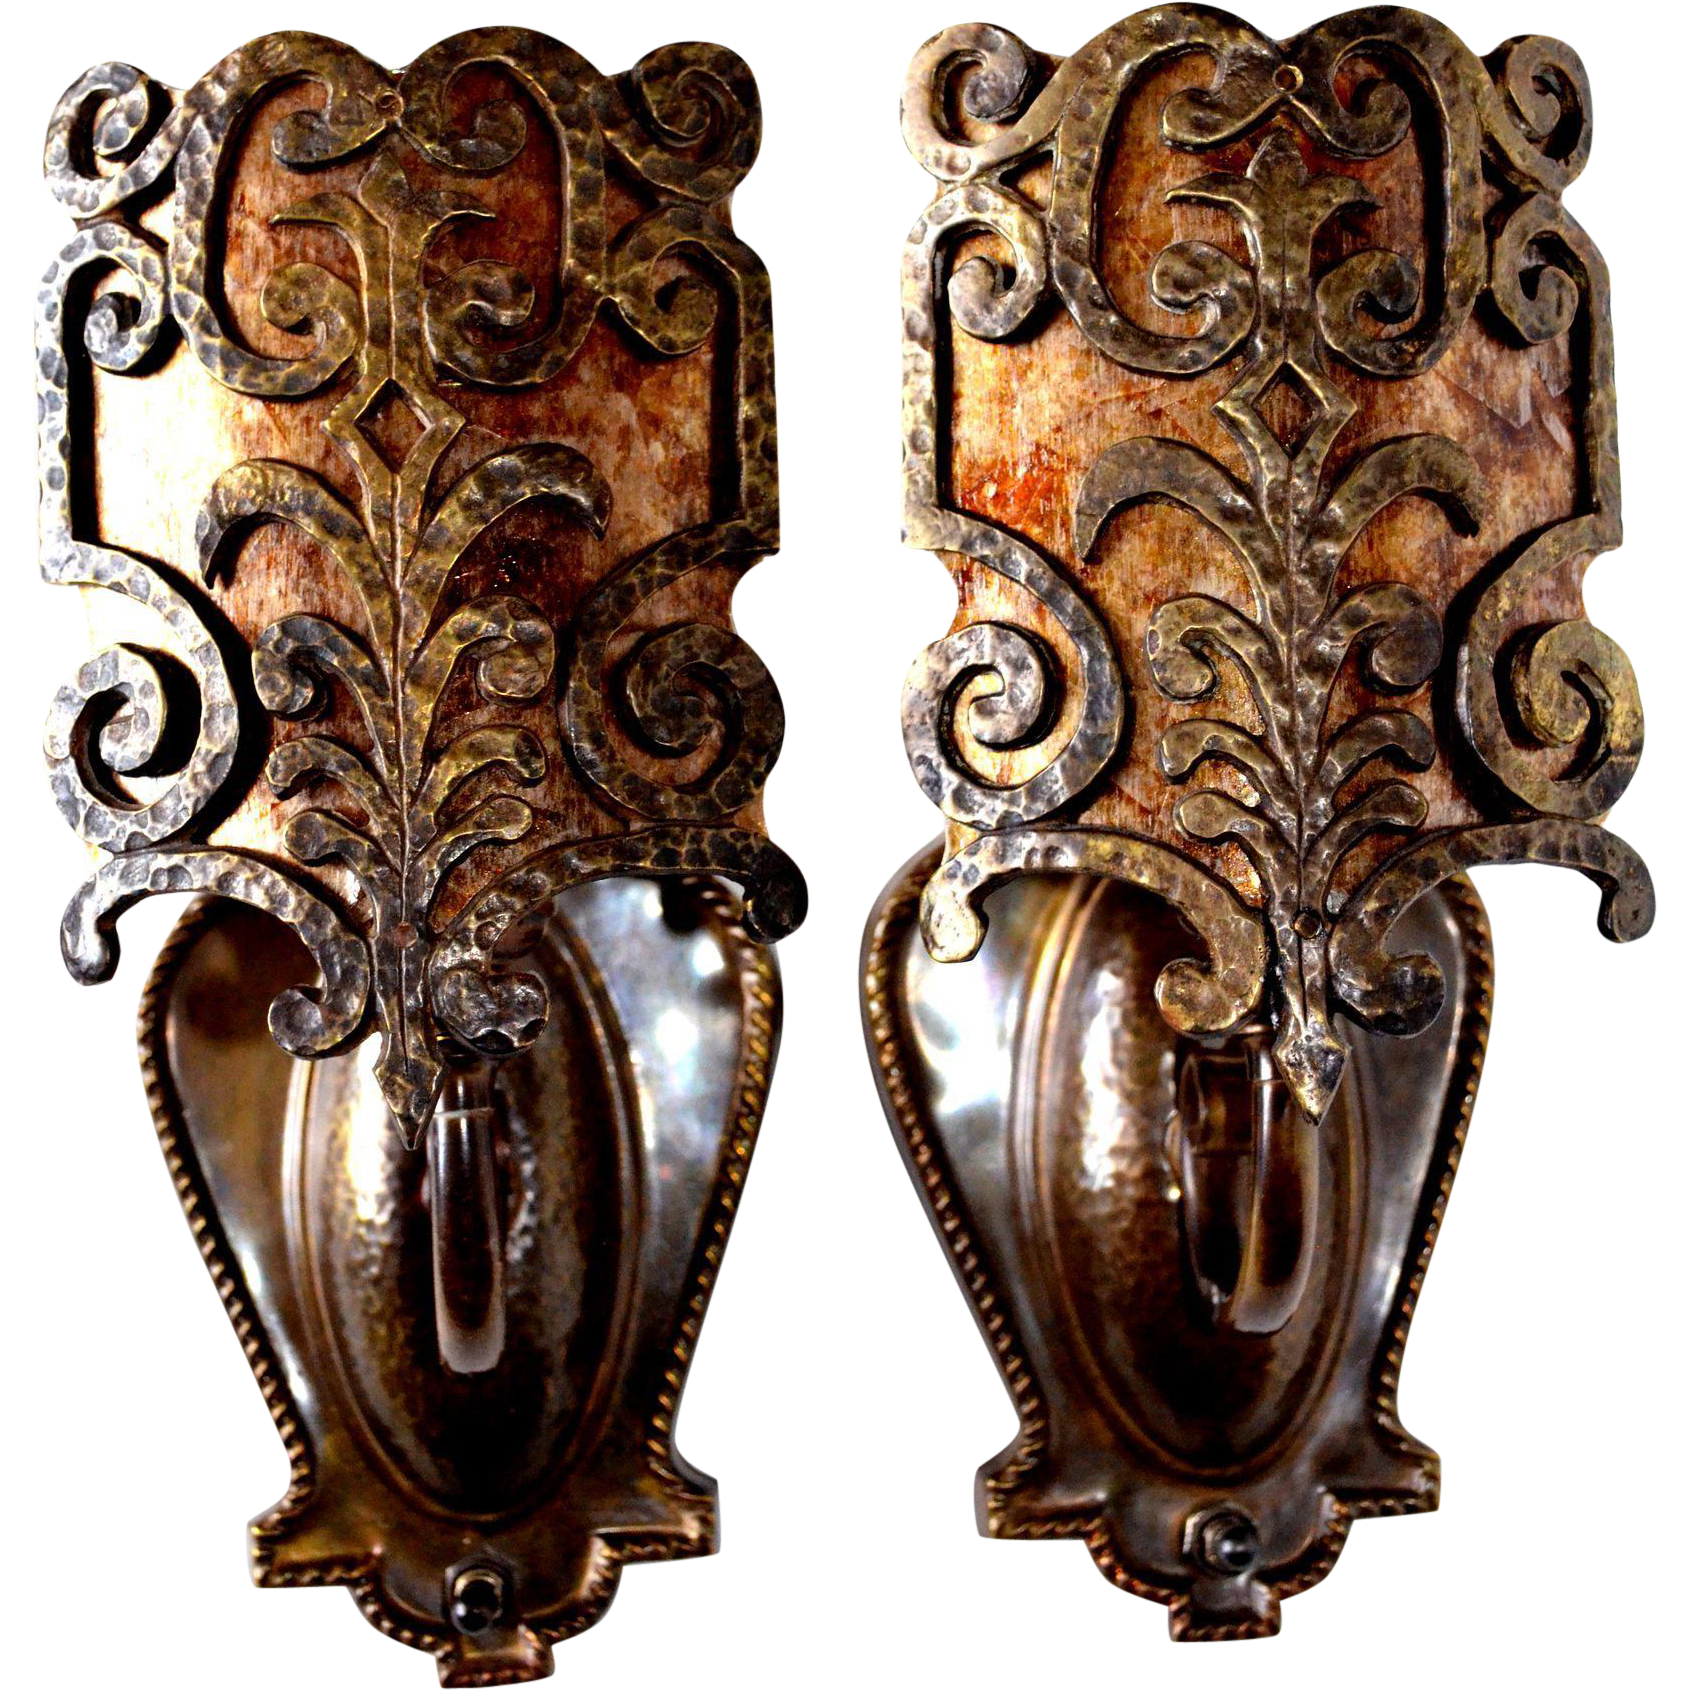 Pair of Spanish Revival/Arts and Crafts Hammered Sconces with Mica Shades